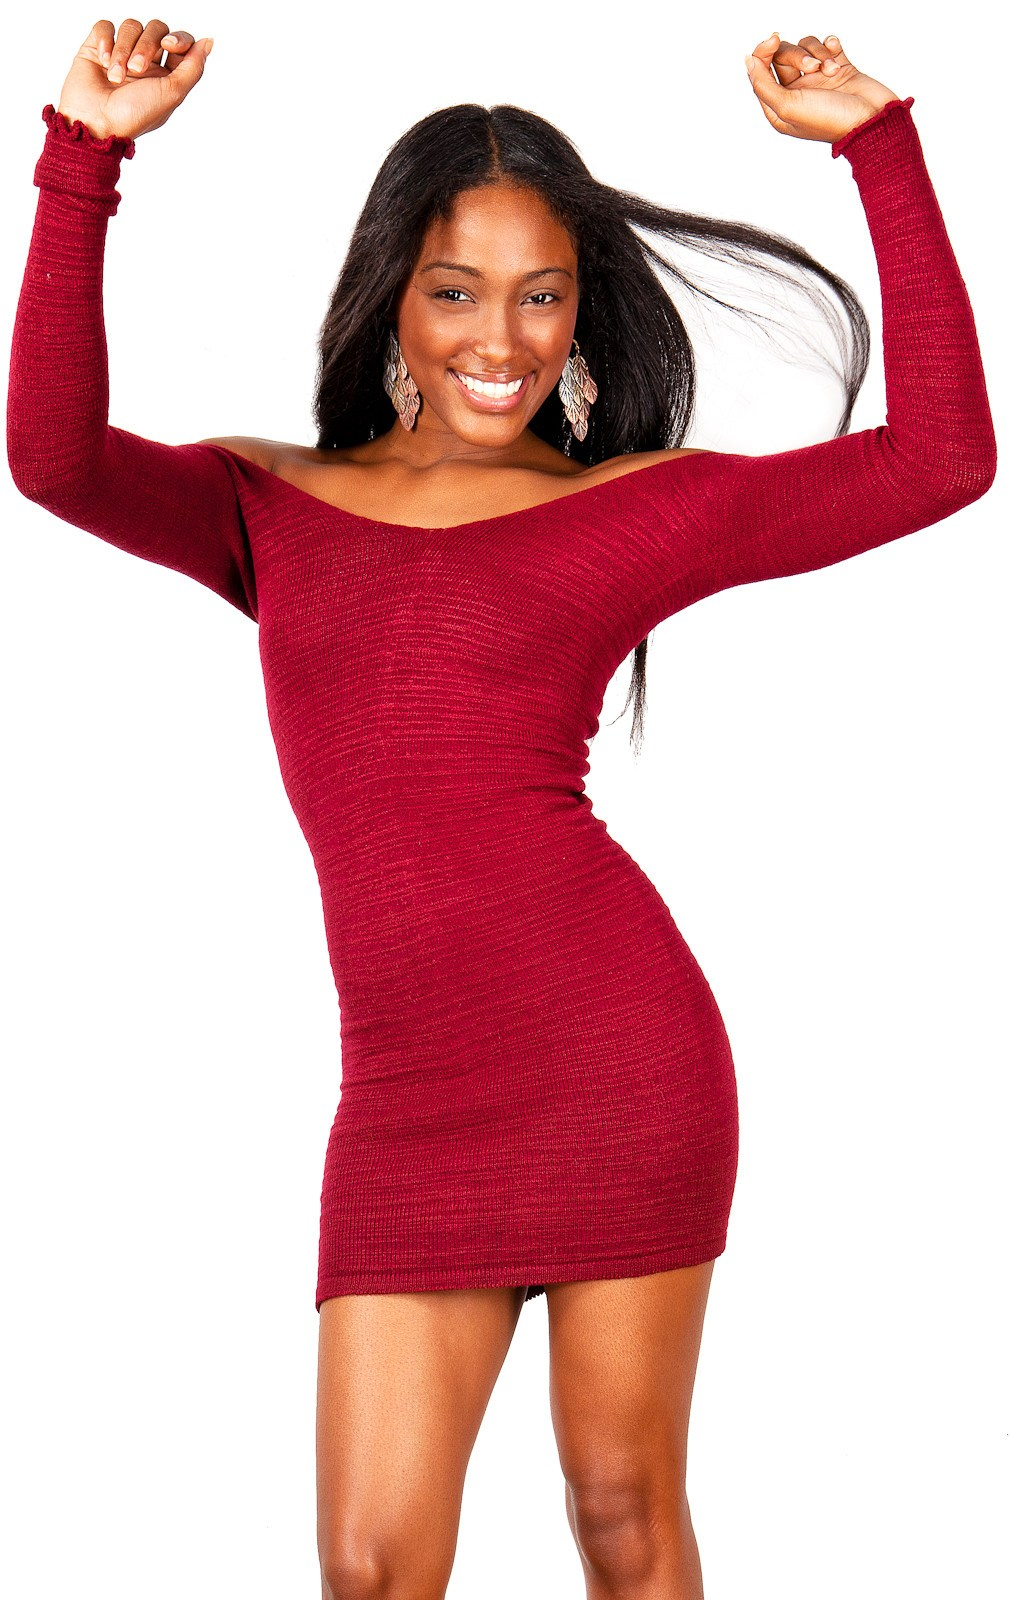 Sexy Sweater Mini Dress KD dance New York Stretch Knit Cozy Warm & Durable High Quality Made In USA @KDdanceNewYork #MadeInUSA - 5